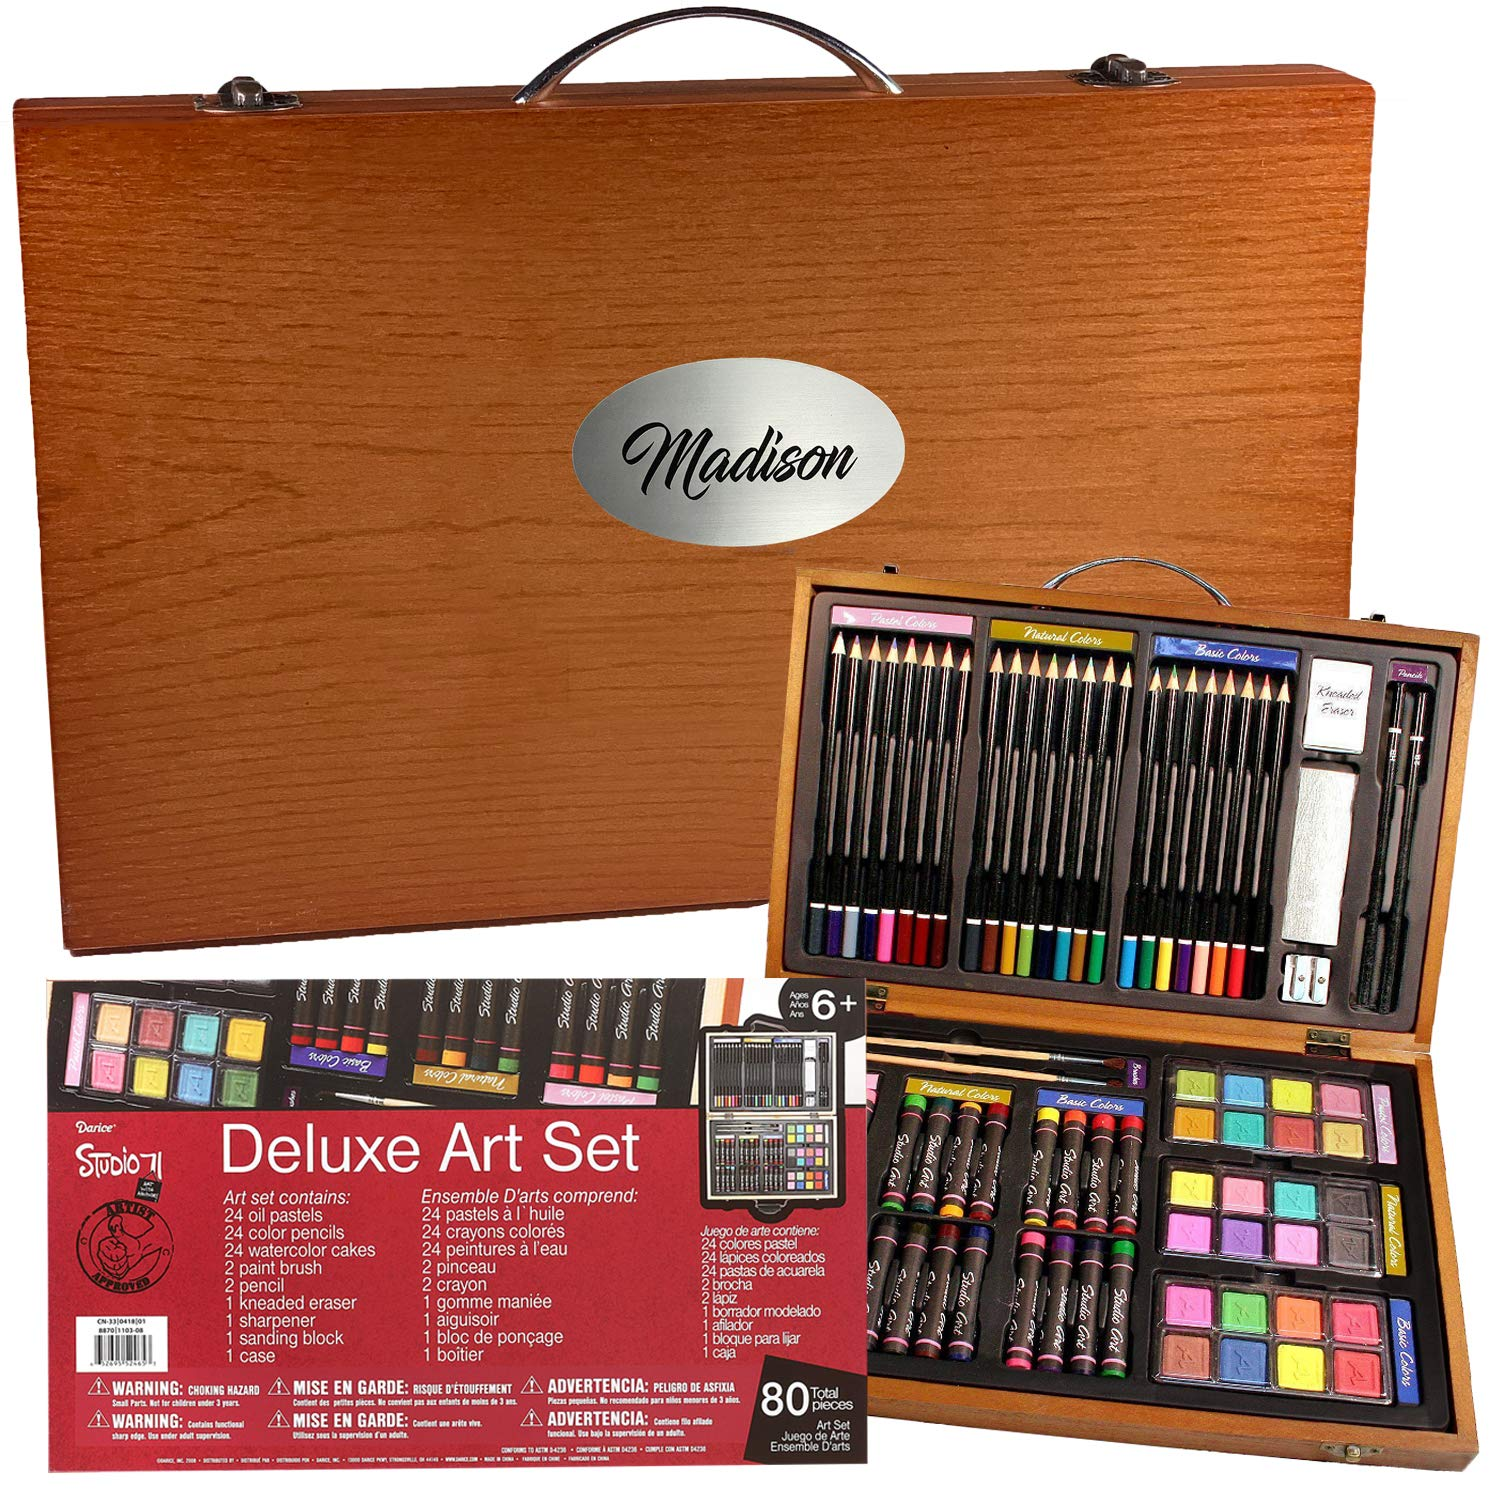 Personalized Art Set, Deluxe Drawing Painting Supplies, Portable Case, 80 Pieces All Things Weddings